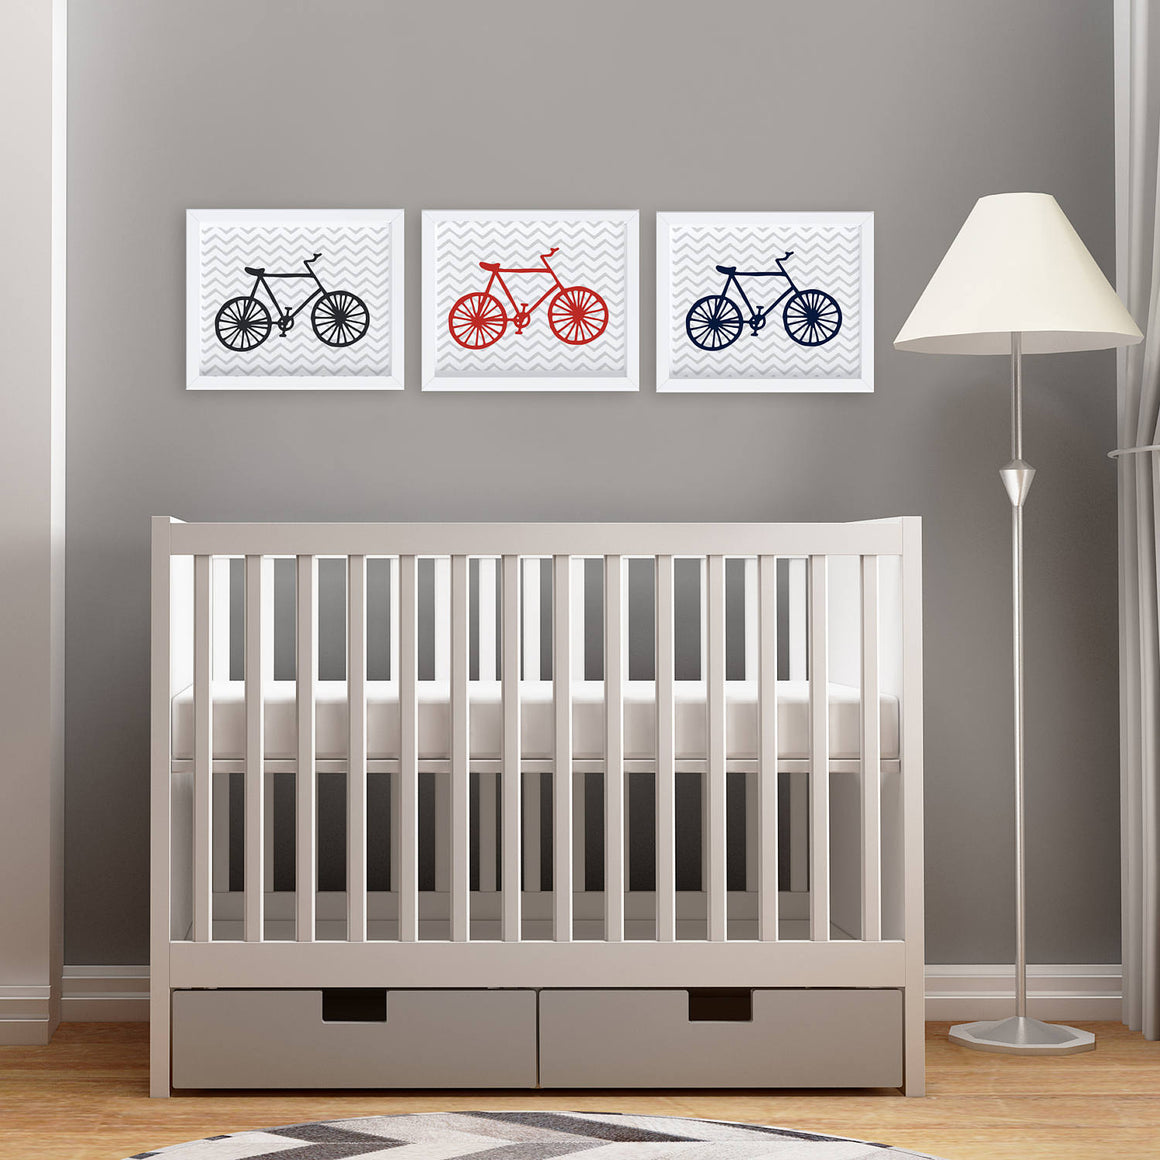 Bicycle Nursery Wall Art Printables - Set of 3 (instant download)